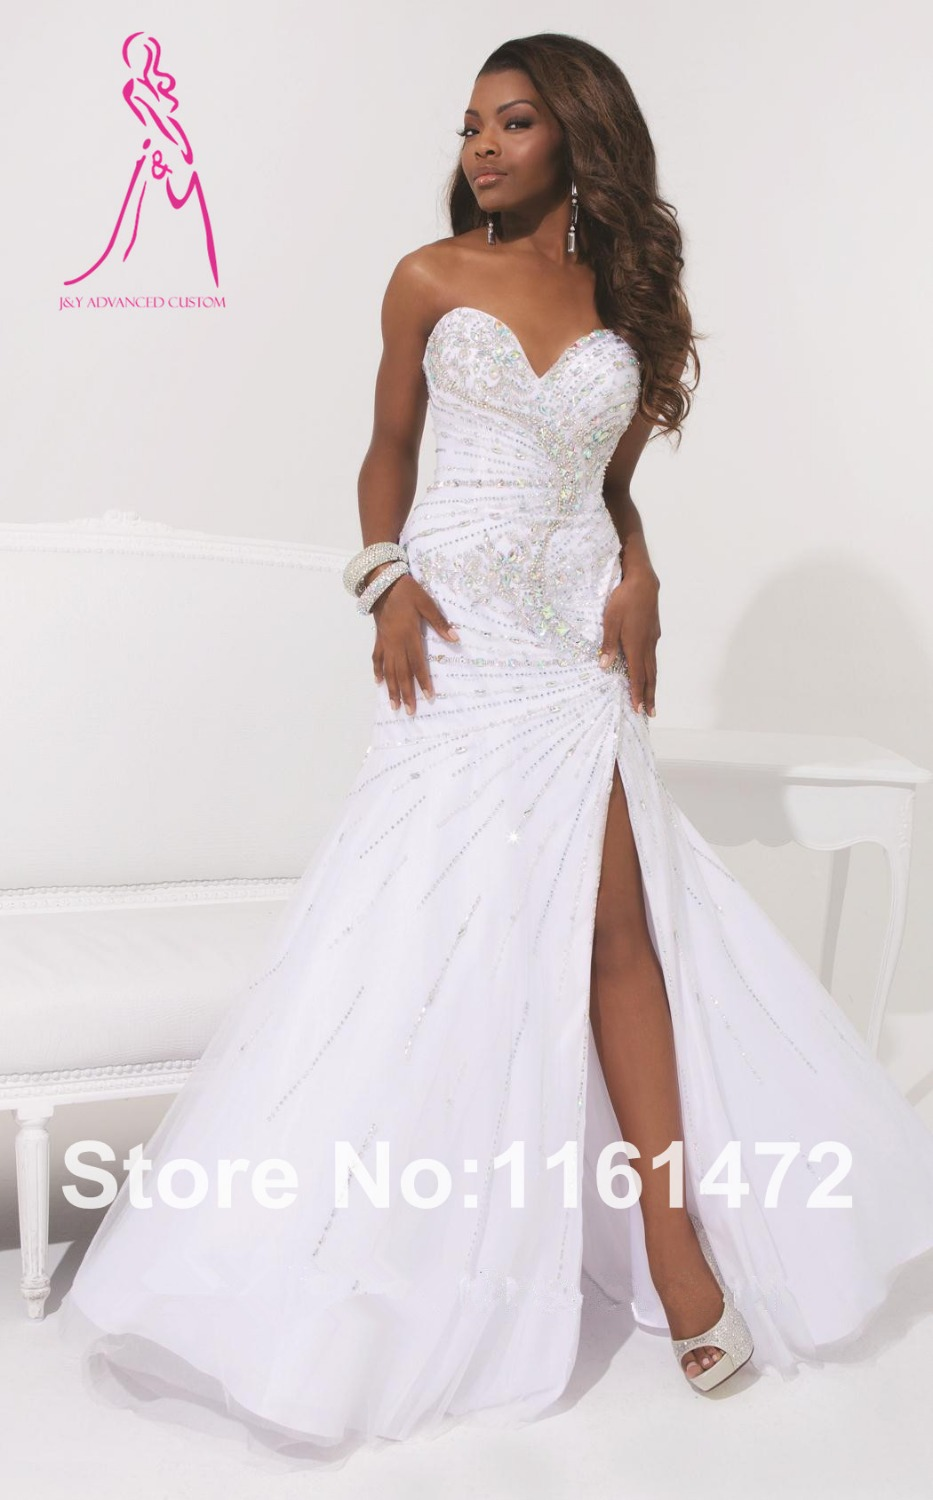 Vegas prom dresses discount evening dresses for Las vegas wedding dress rental